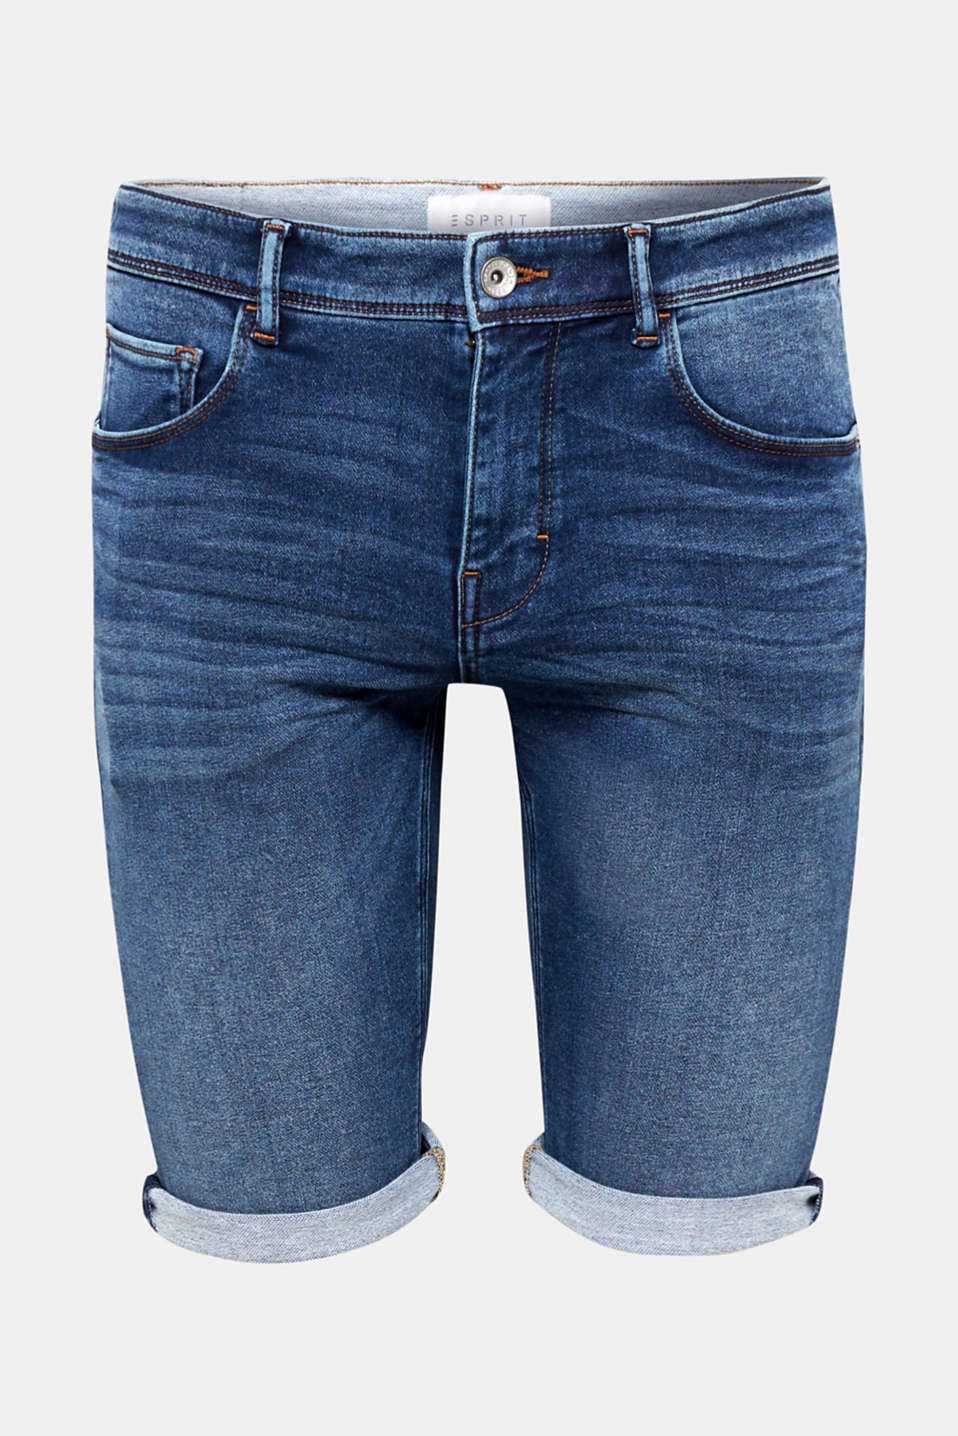 Esprit - Superstretch-Jeansshort in Jogger-Qualität